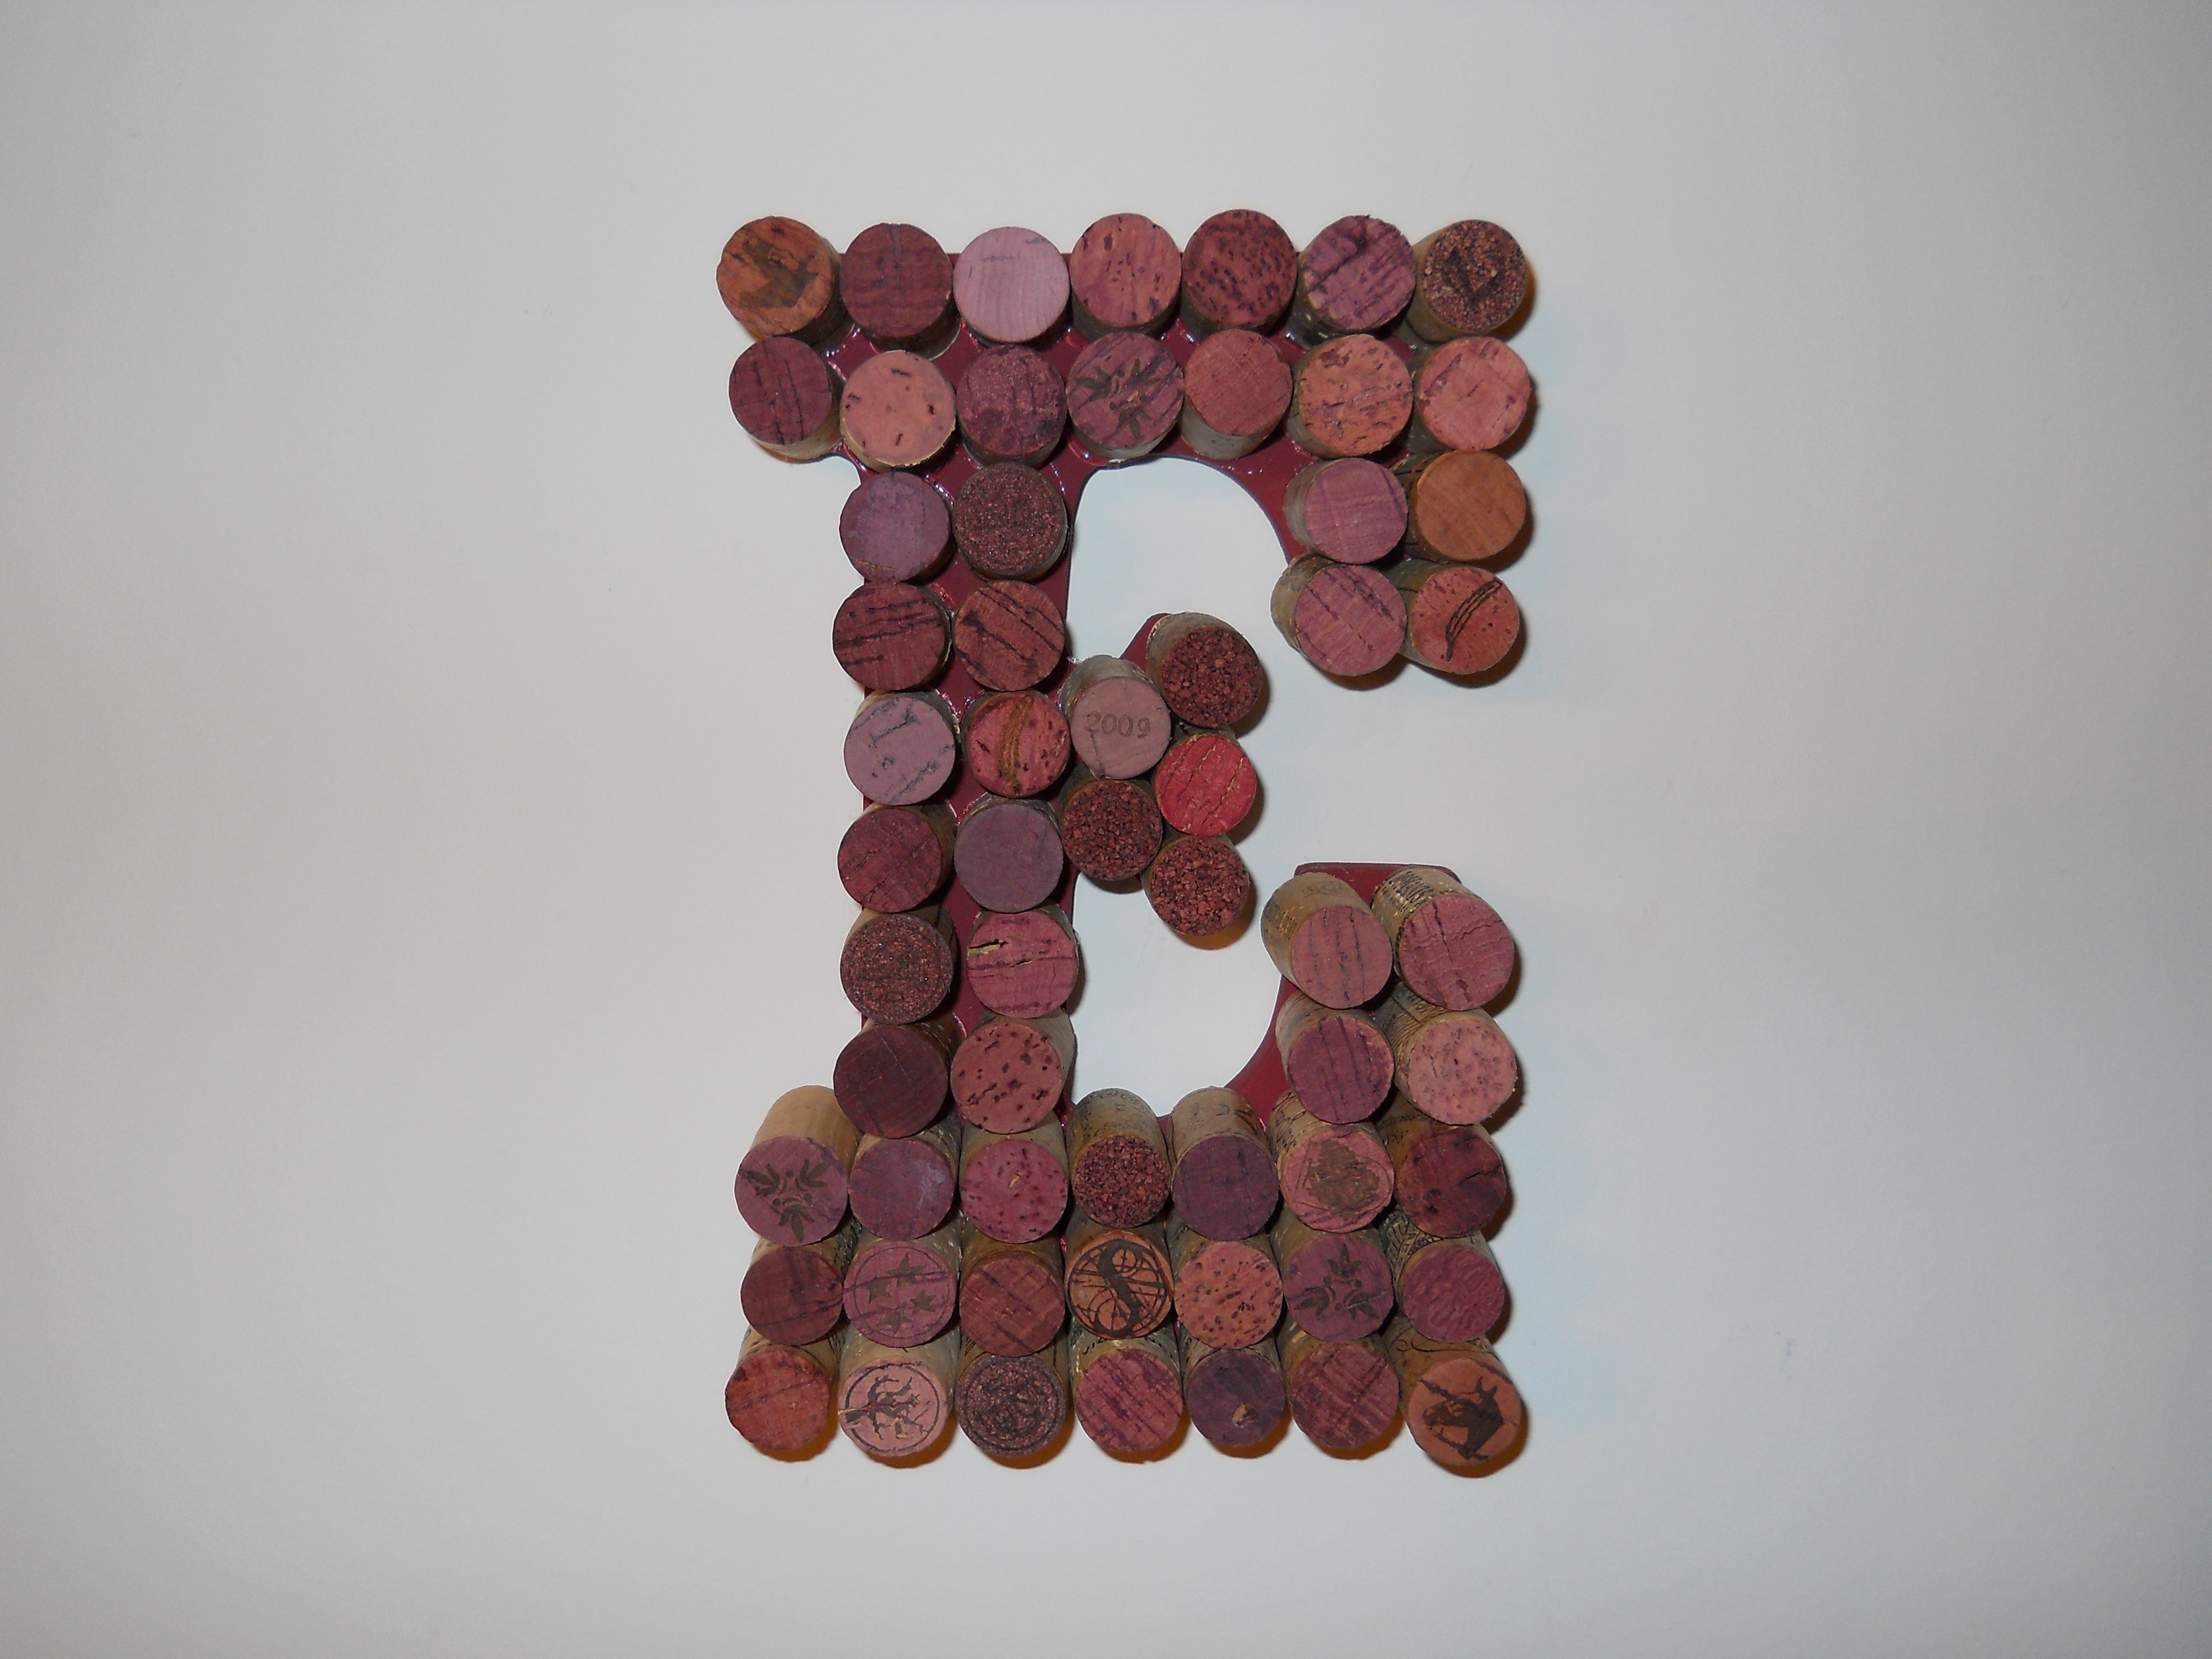 Wine corks craft ideas pinterest for Crafts to make with wine corks